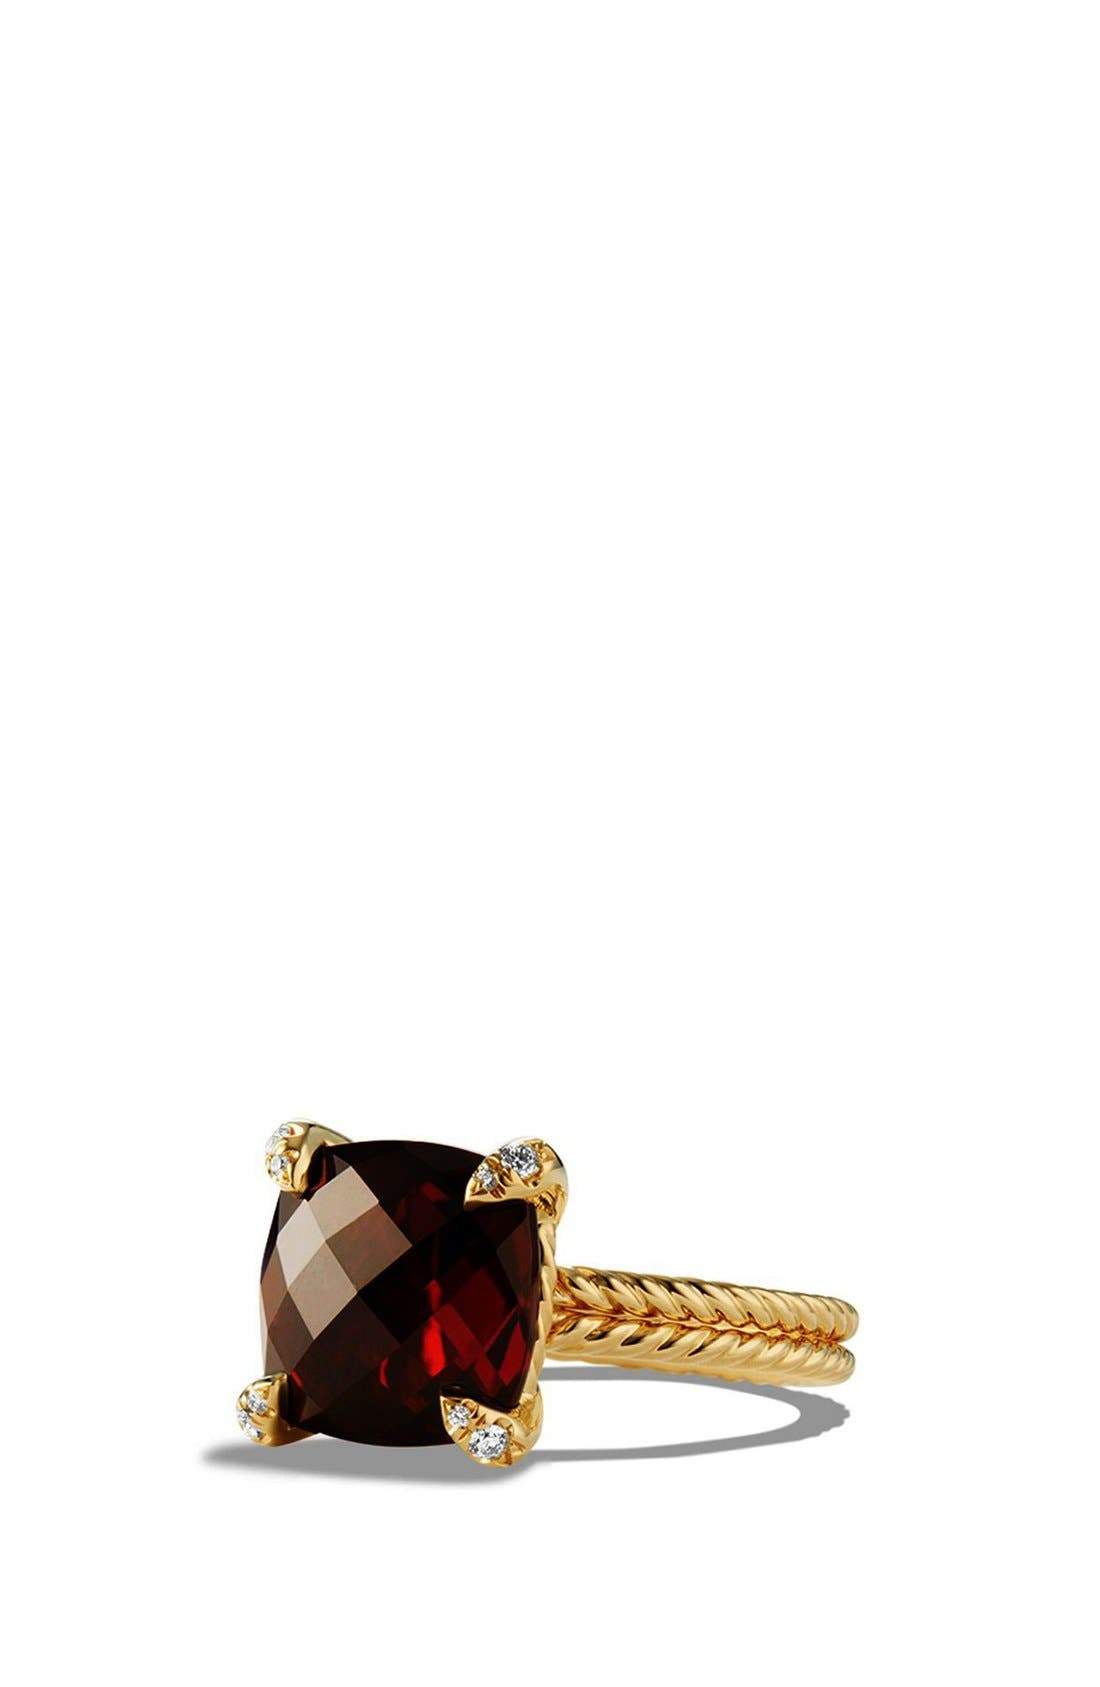 Châtelaine Ring with Hampton Blue Topaz and Diamonds in 18K Gold,                         Main,                         color, GARNET